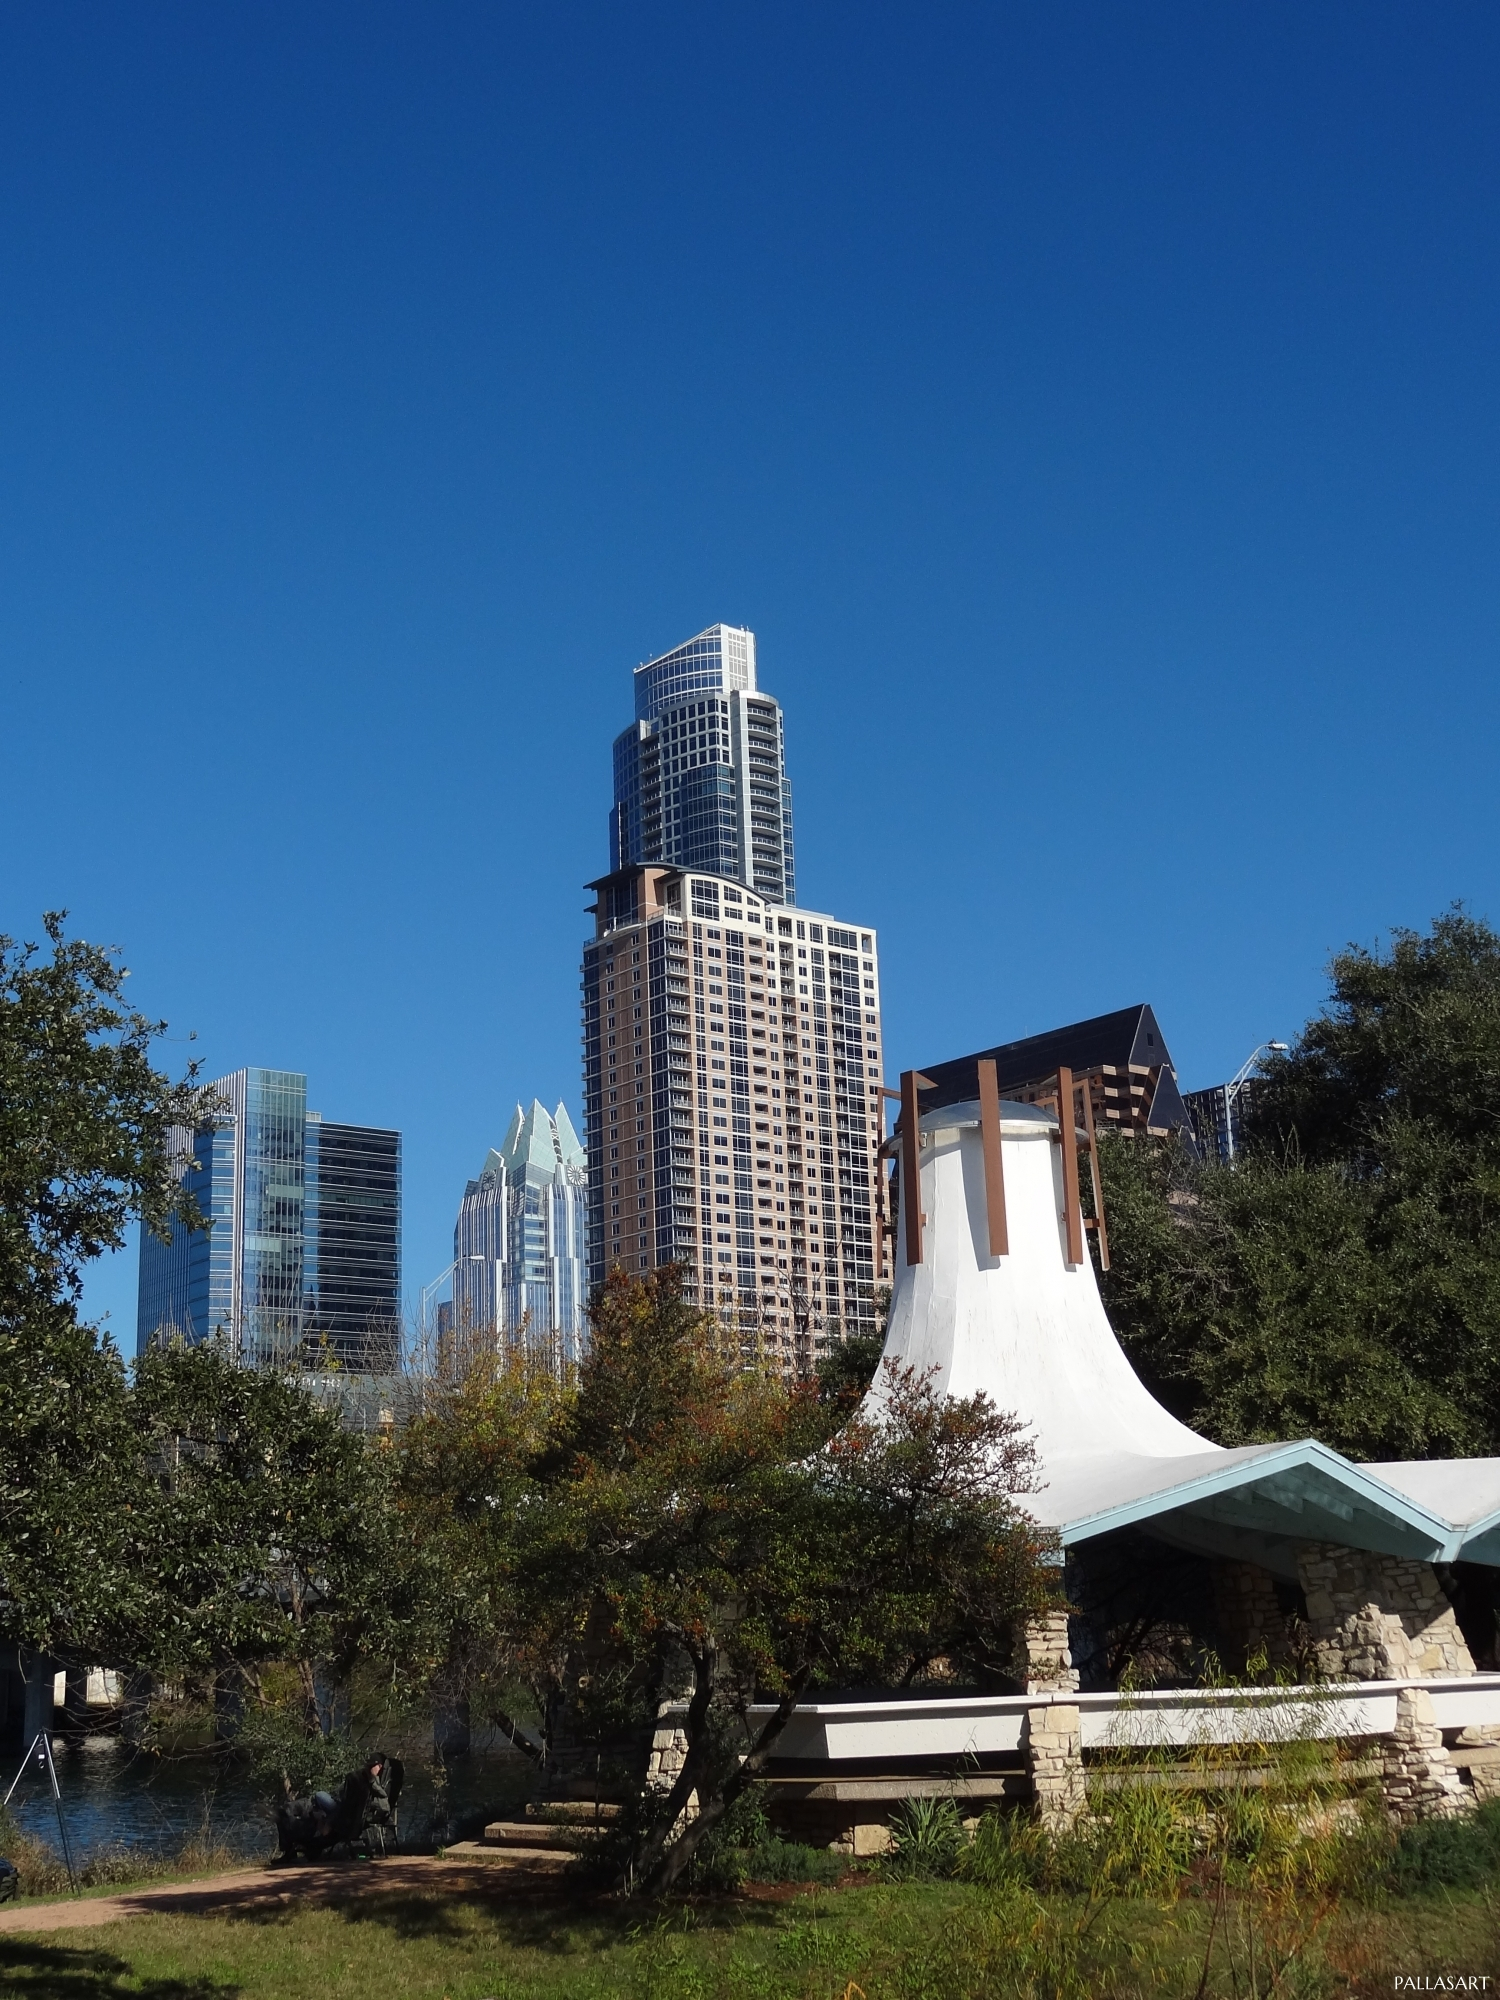 Downtown Austin from Auditorium Shoes Gazebo